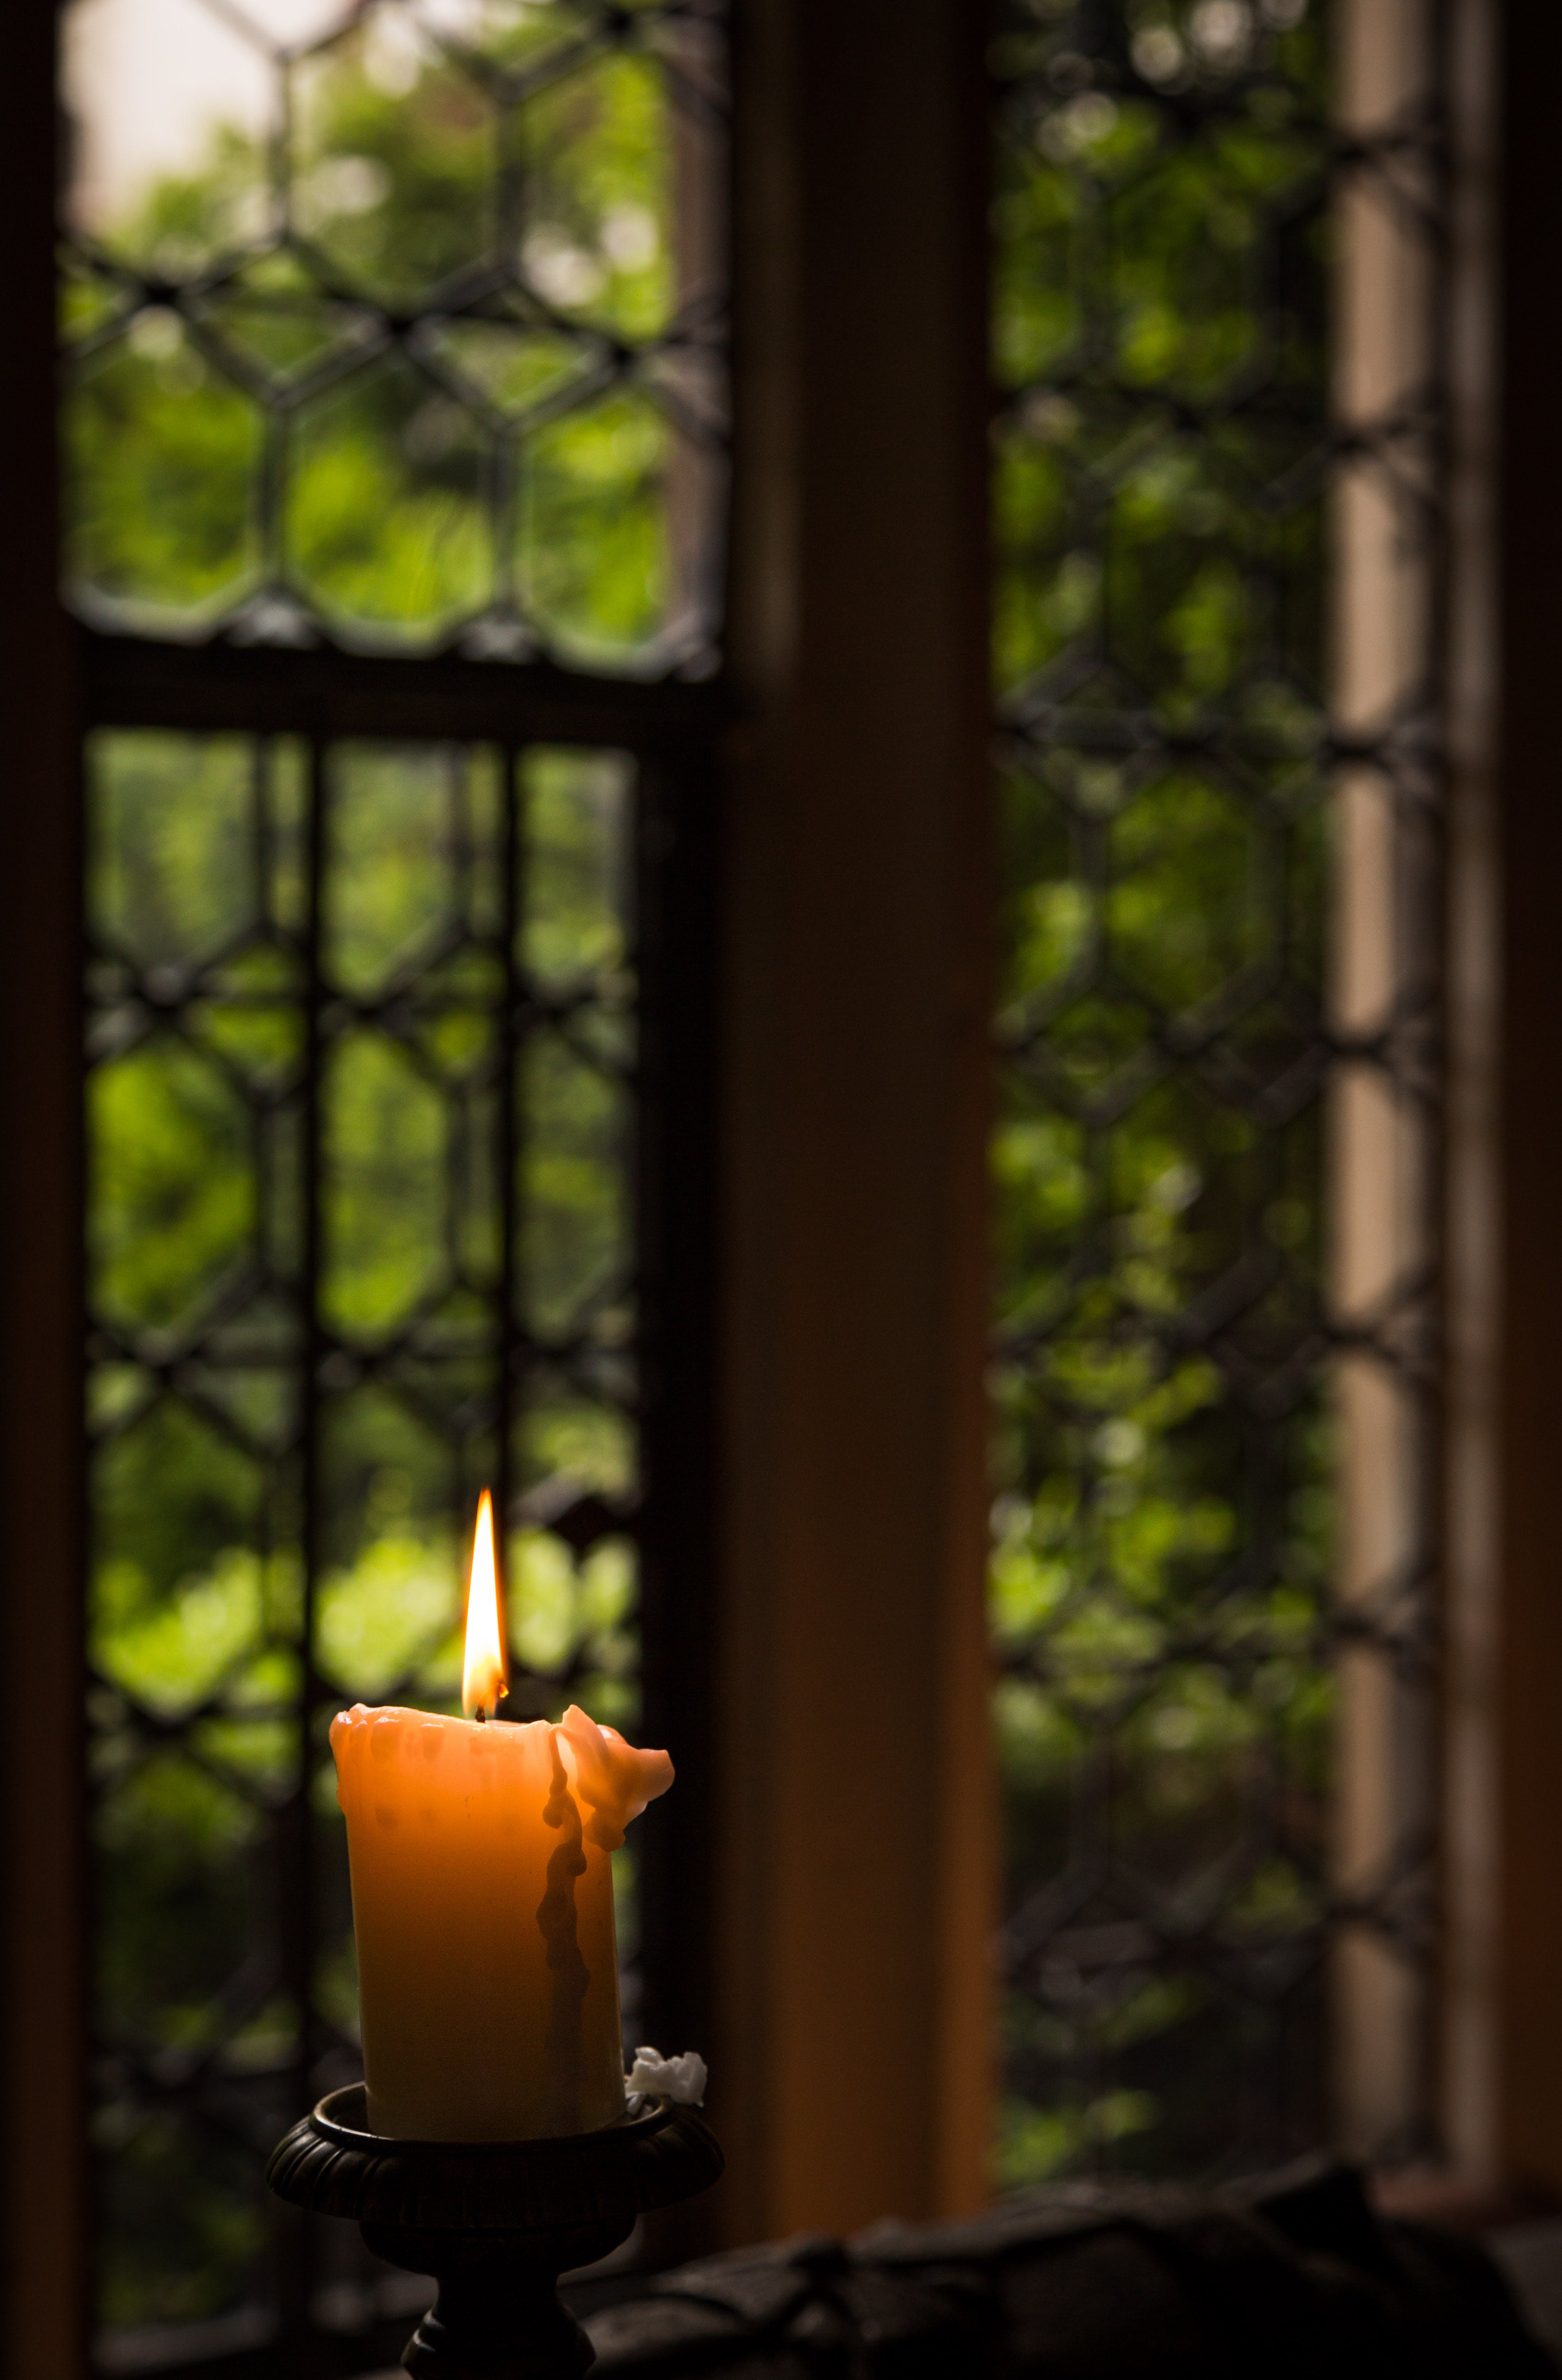 Free stock photo of candle, candlelight, old window